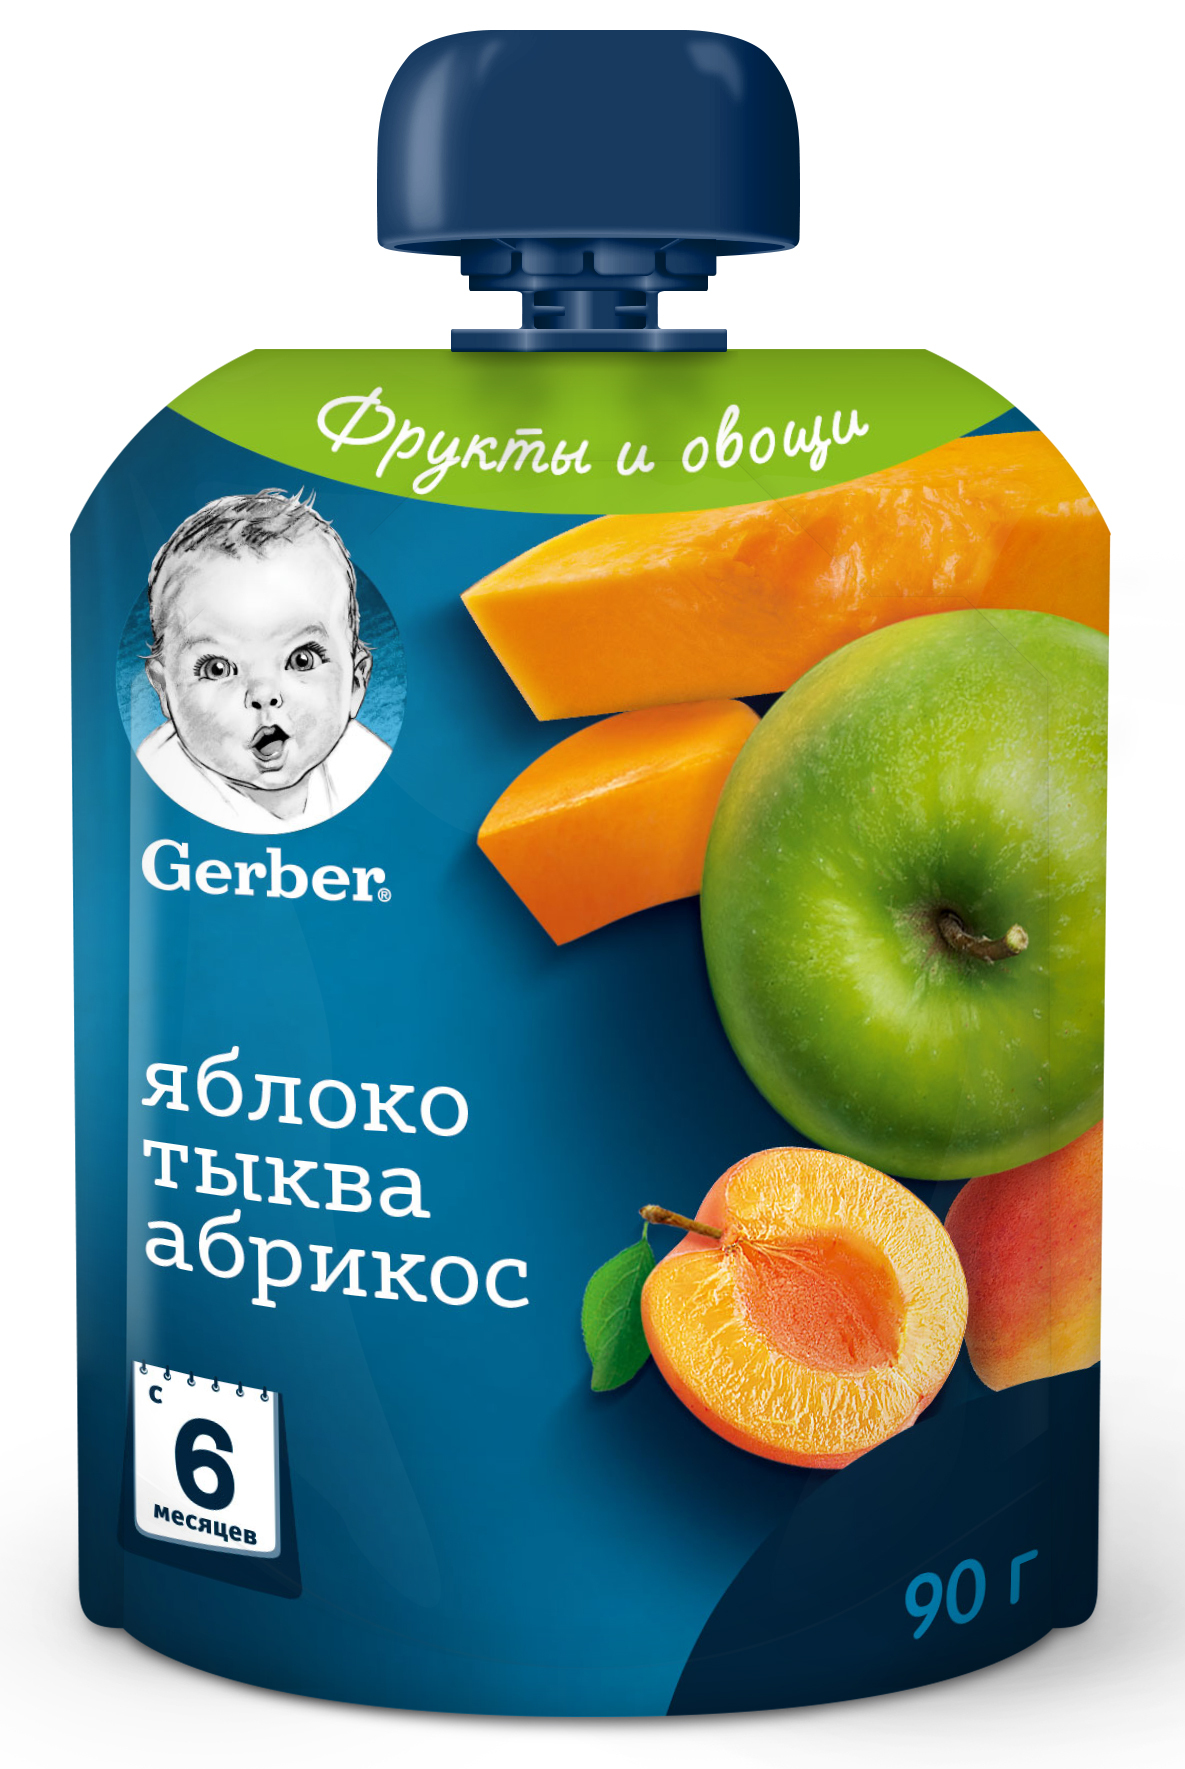 004_Gerber_all_pouch_90g_Apple_Squash_Apricot_v6_mockup